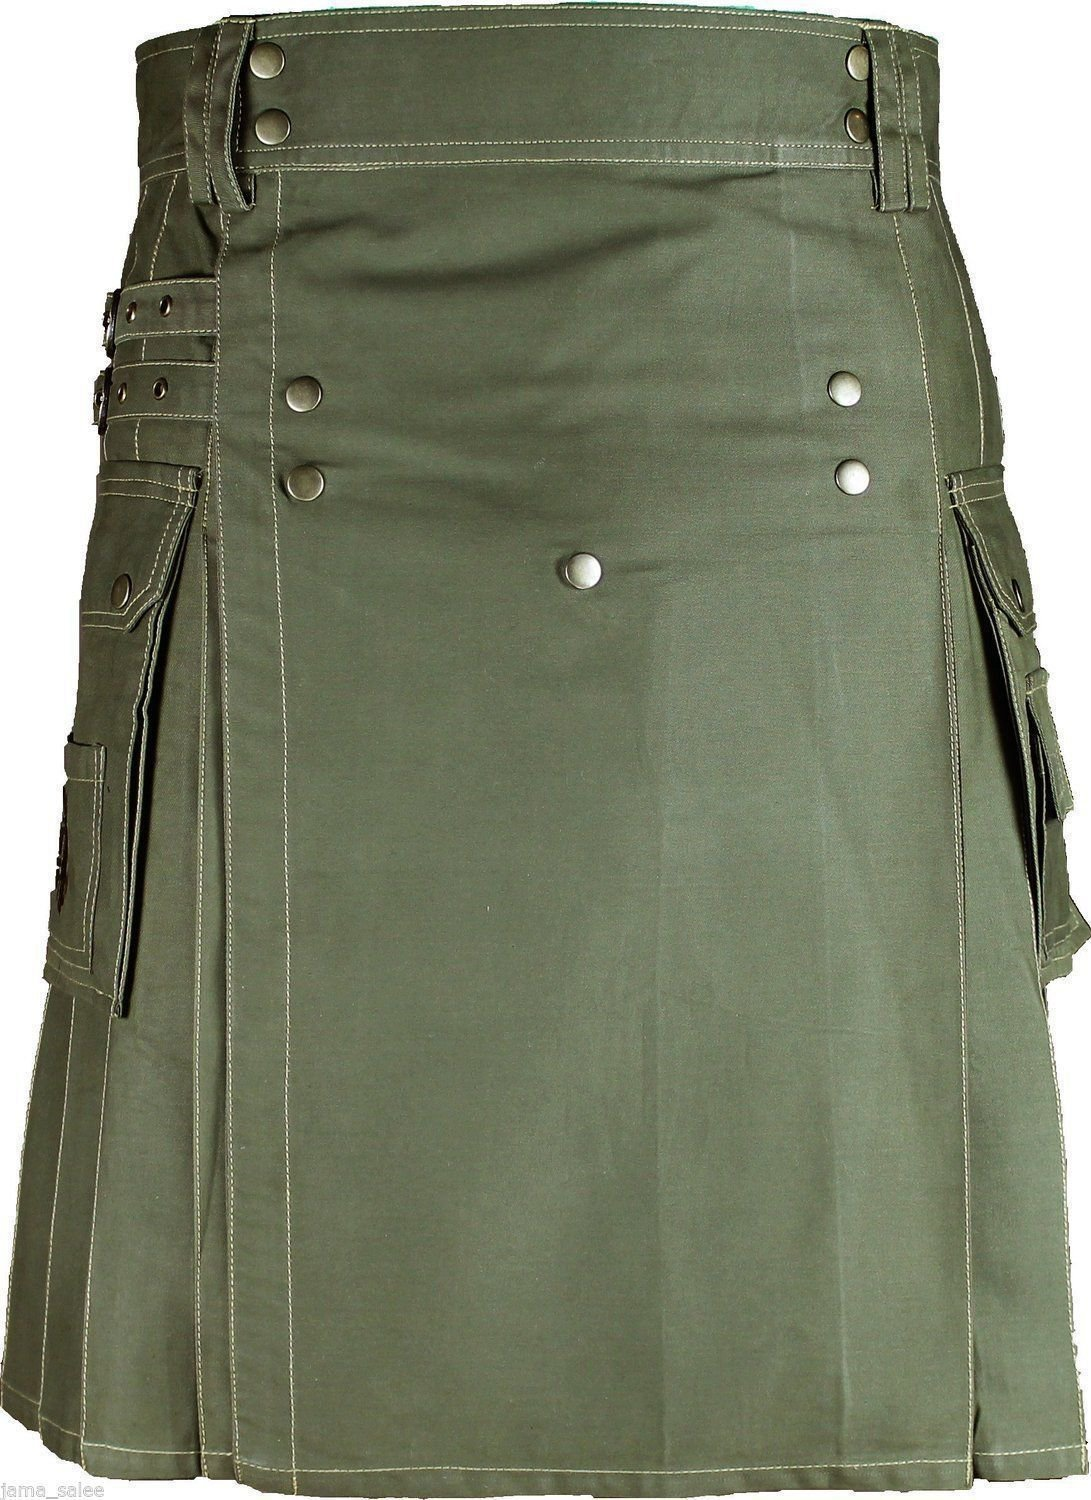 New 42 Size Modern Olive Green Kilt Traditional Scottish Utility Cotton Kilt